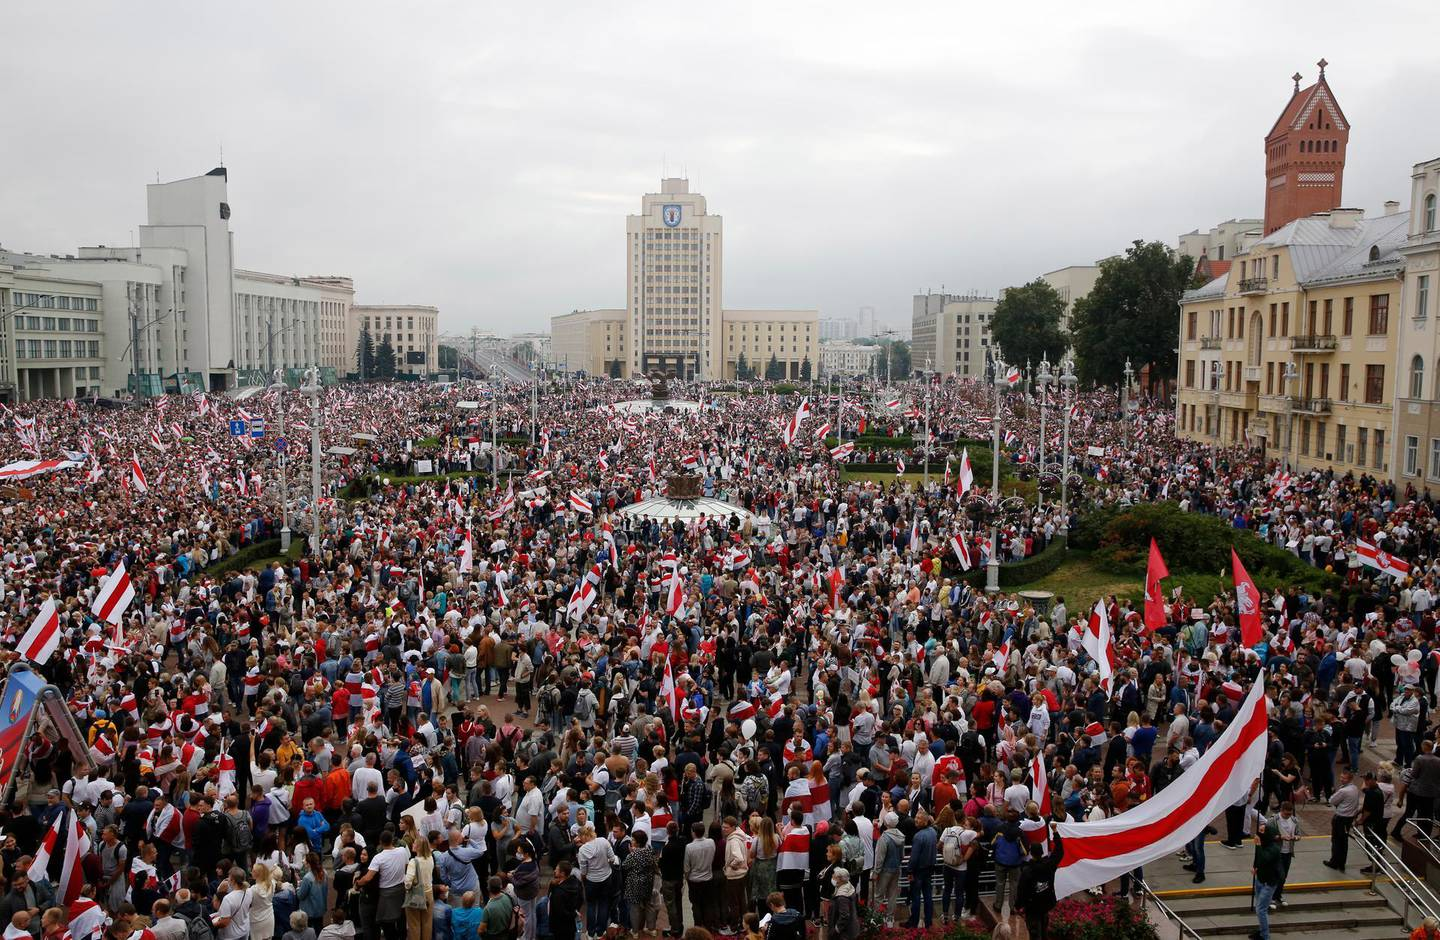 epa08619851 People attend a protest against the results of the presidential elections, in Minsk, Belarus 23 August 2020. Opposition in Belarus alleges poll-rigging and police violence at protests following election results claiming that president Lukashenko had won a landslide victory in the 09 August elections.  EPA/TATYANA ZENKOVICH